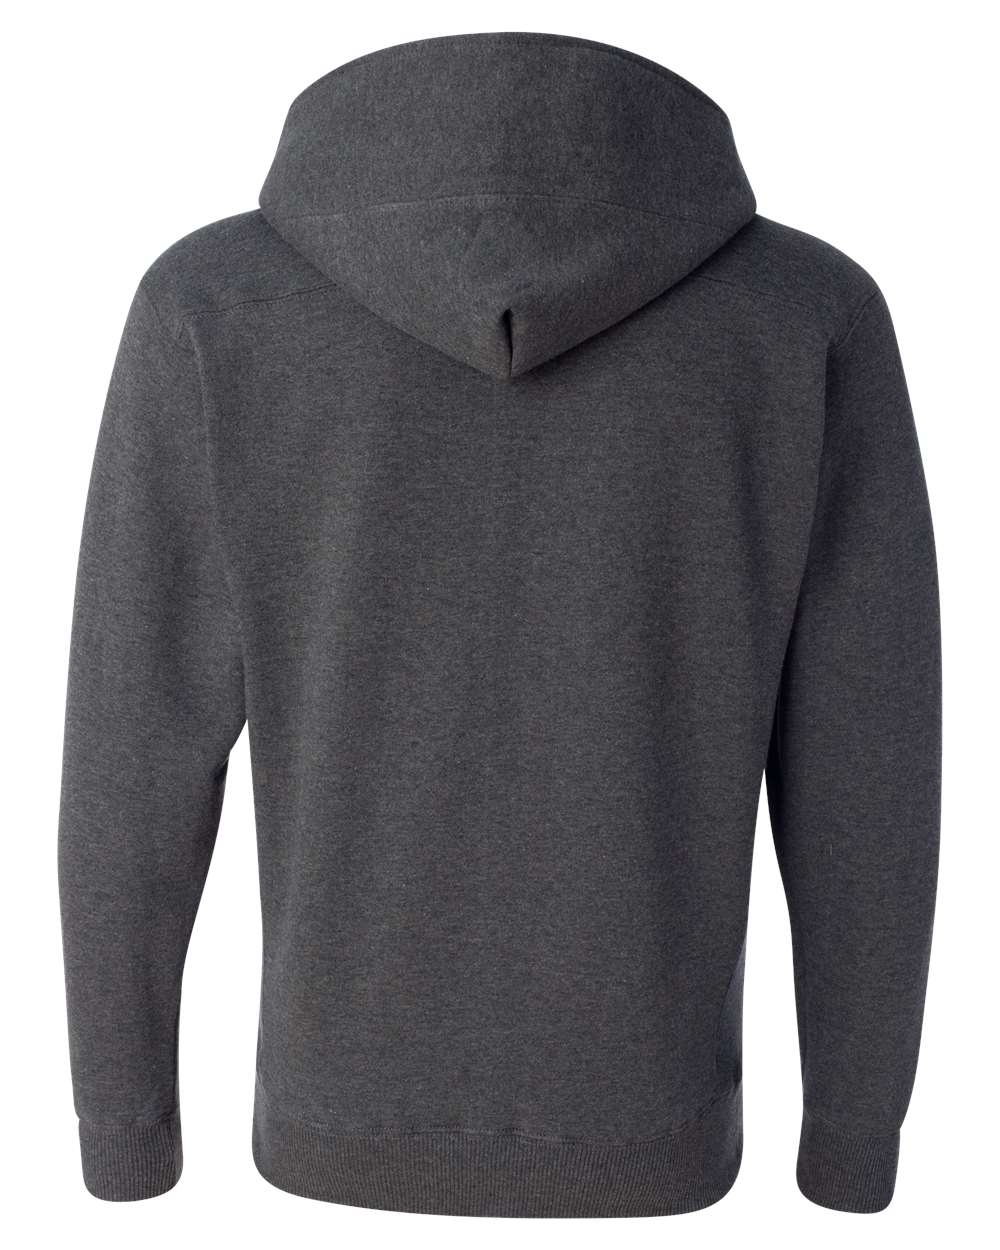 J-America-Mens-Blank-Sport-Lace-Hooded-Sweatshirt-8830-up-to-3XL thumbnail 10